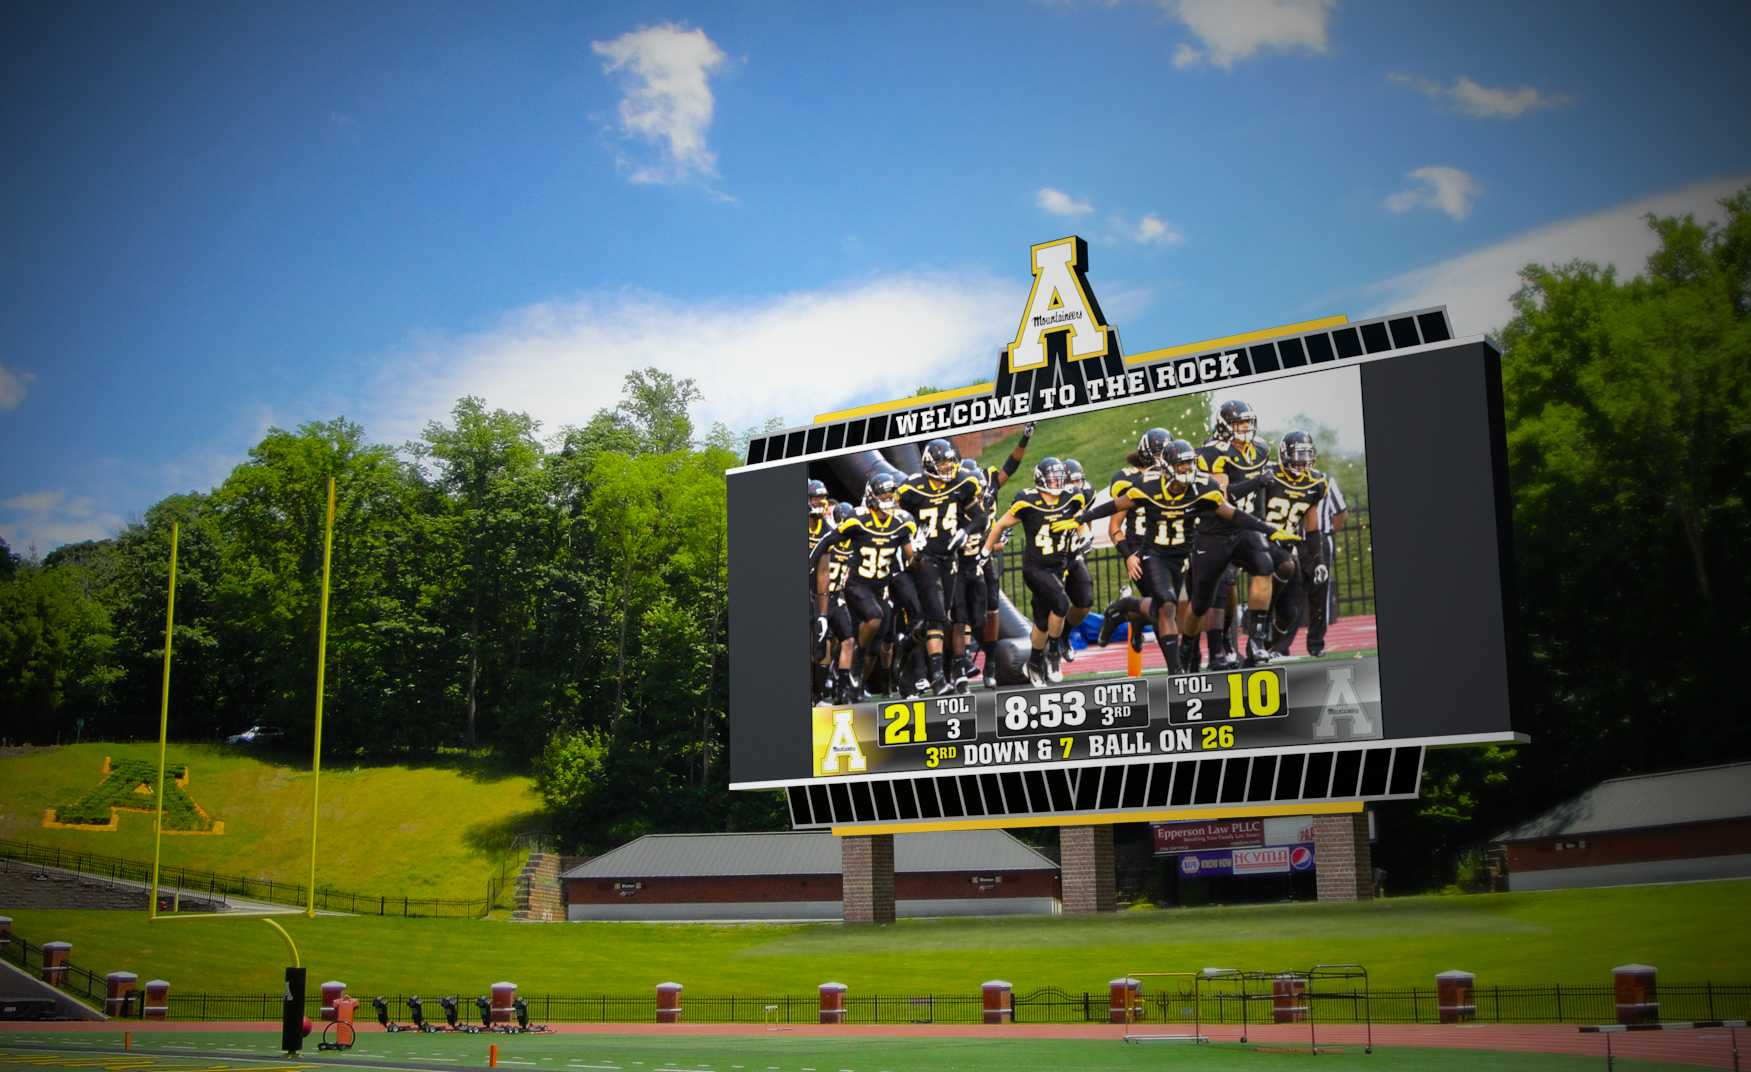 The+new+Kidd+Brewer+Stadium+scoreboard+concept+expected+to+be+finished+in+the+fall+%0APhoto+courtesy%3A+App+State+Athletics+